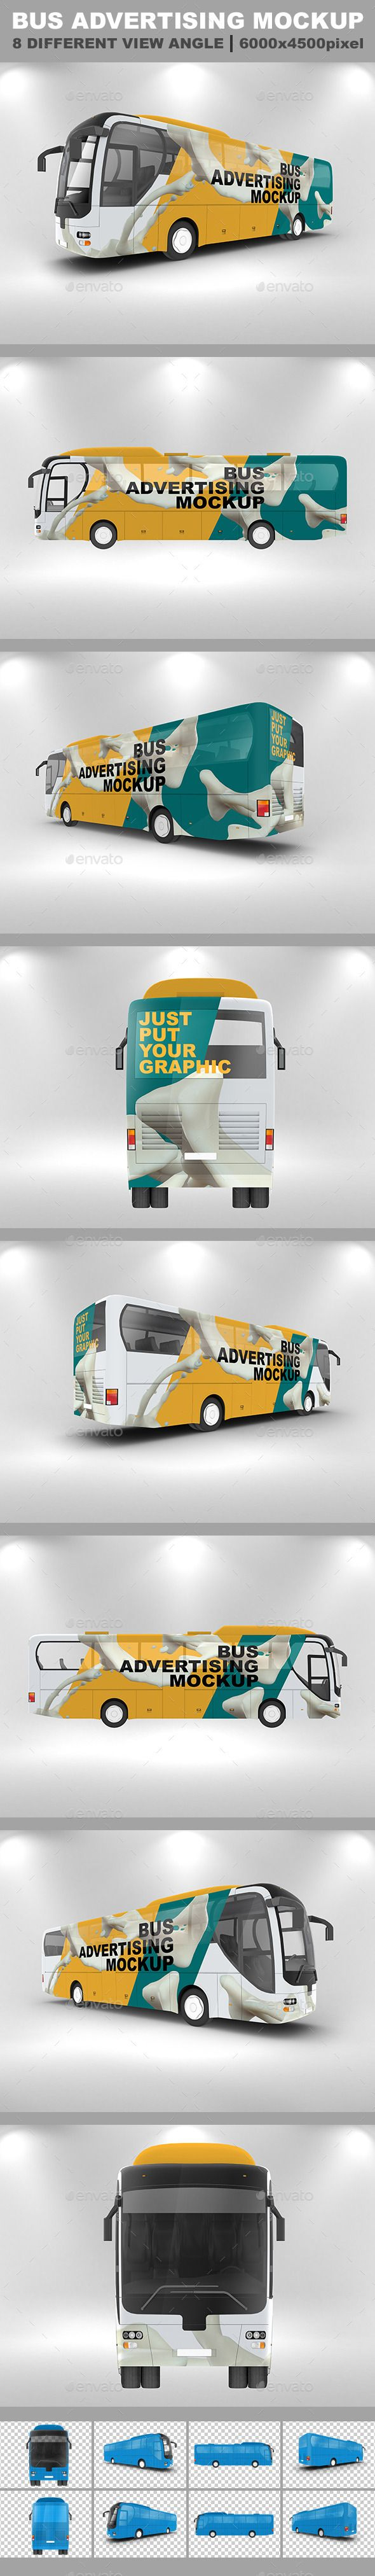 Bus Advertising Mockup Template #mockup #design Download: http://graphicriver.net/item/bus-advertising-mockup/12606783?ref=ksioks